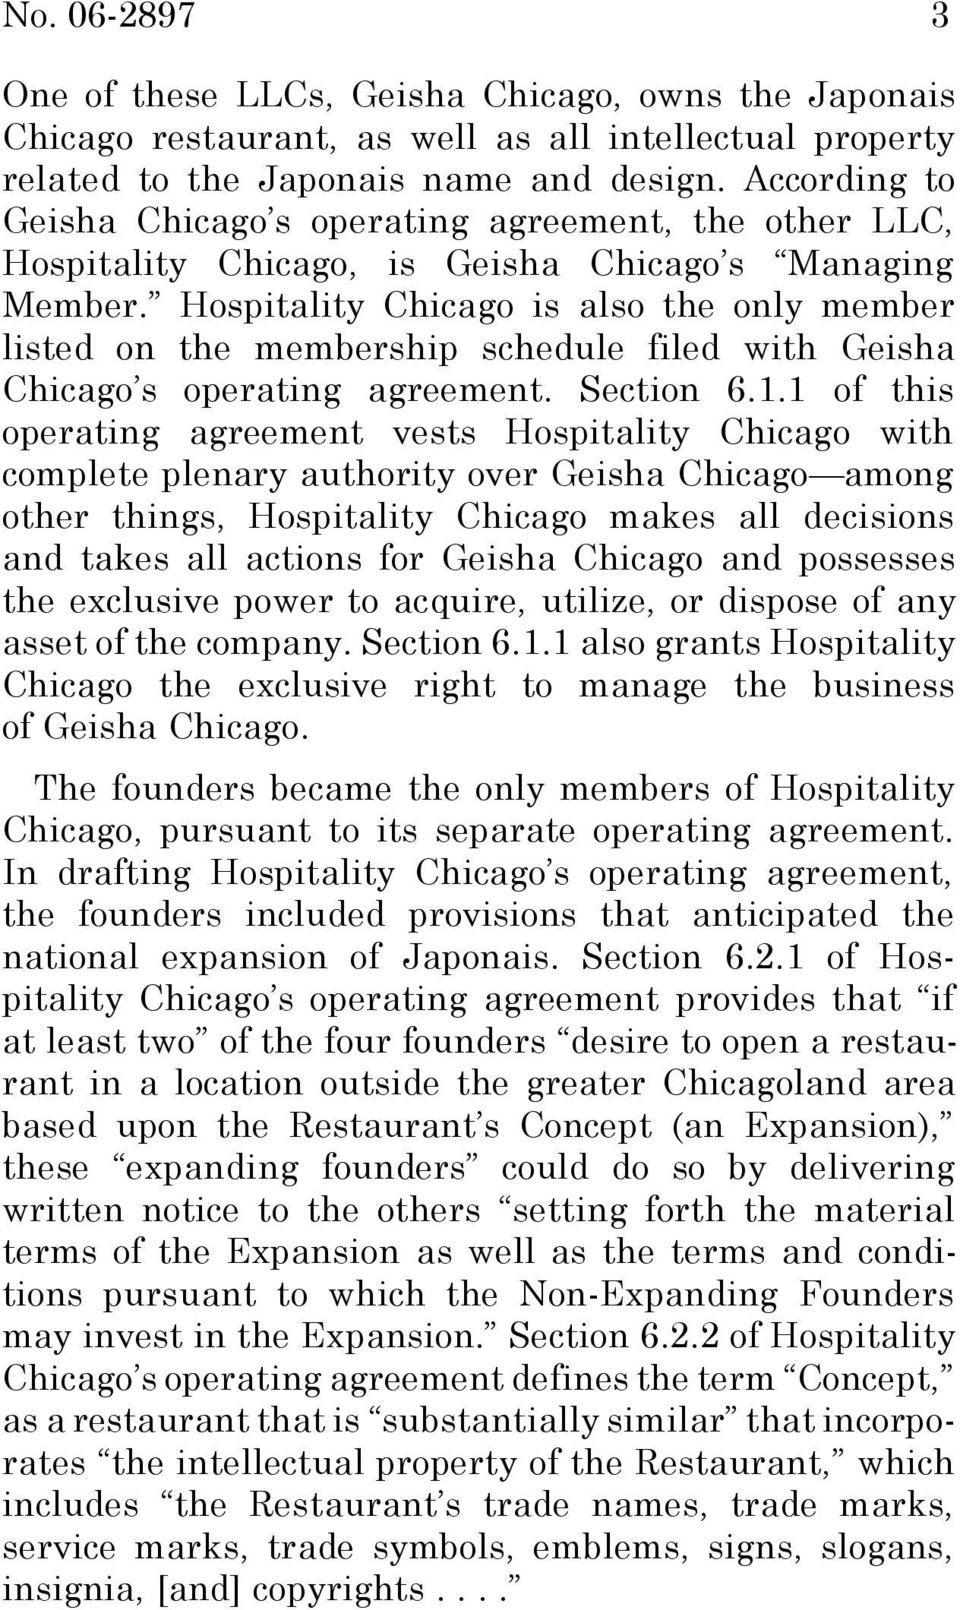 Hospitality Chicago is also the only member listed on the membership schedule filed with Geisha Chicago s operating agreement. Section 6.1.